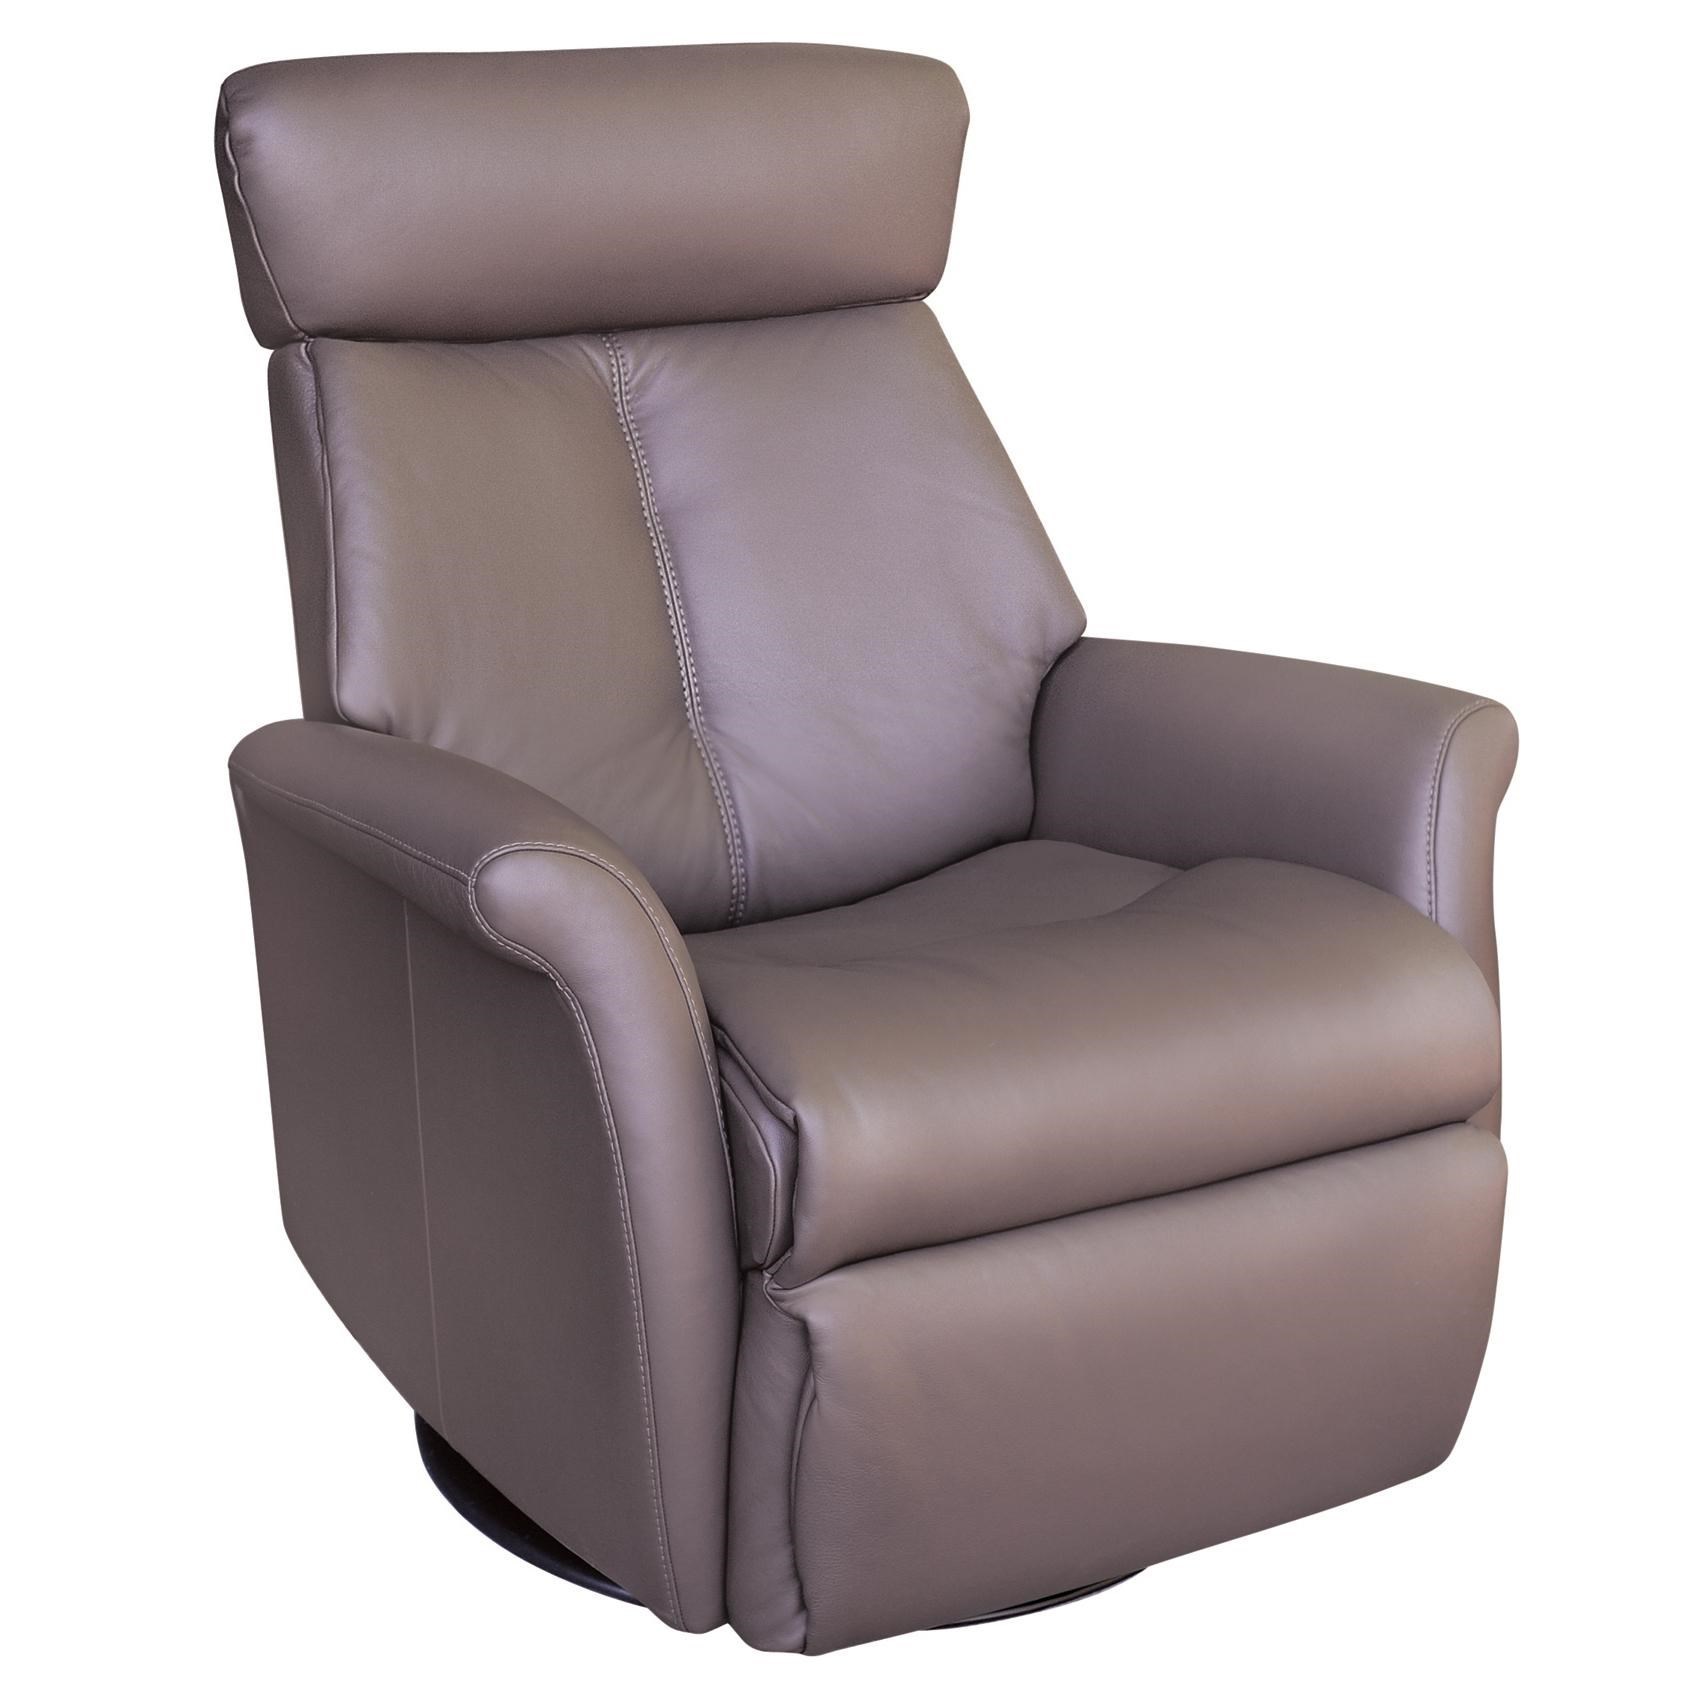 Recliners Modern Bella Wing Recliner Relaxer With Swivel Base